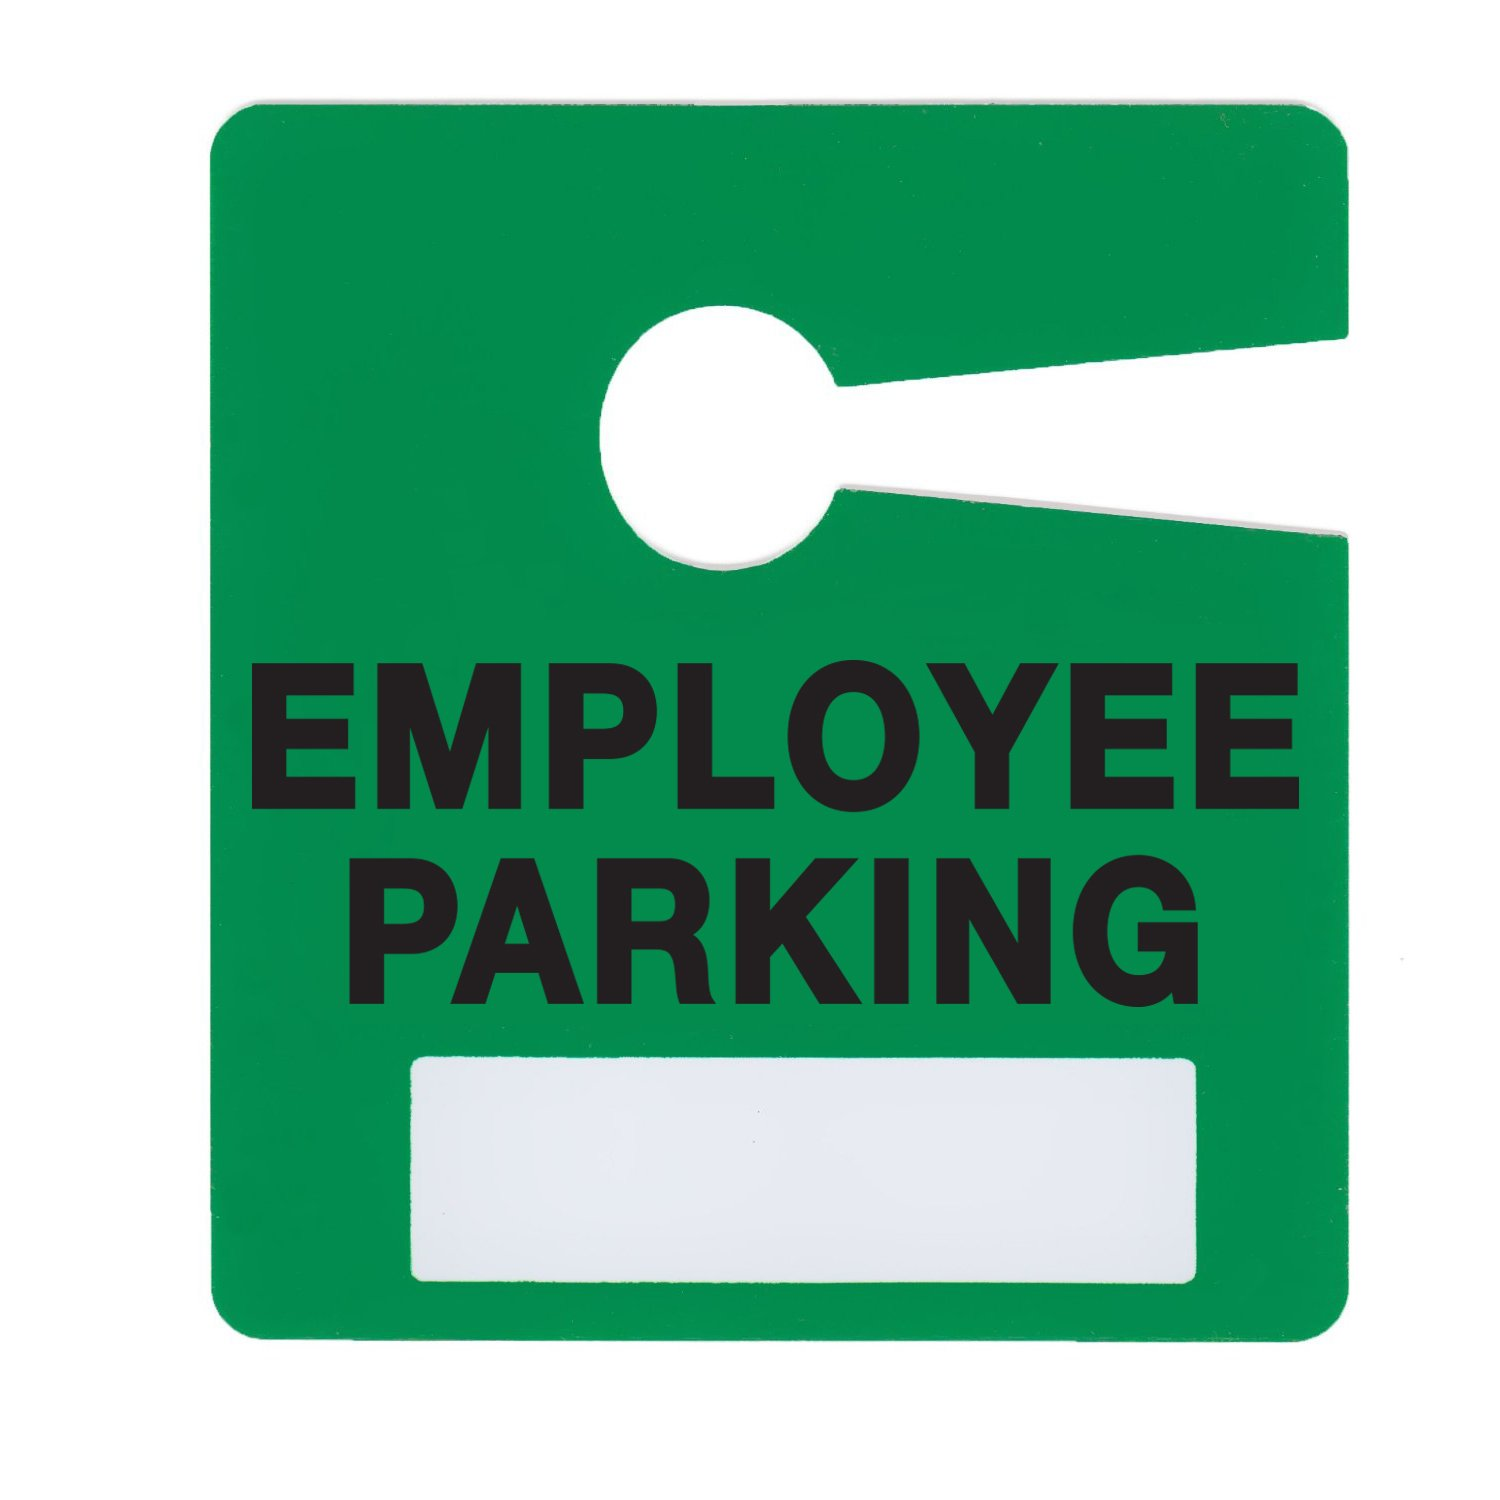 Employee Parking Permit Pass Stock Hang Tags for Office Building, Corporations, Businesses, Employers, by Milcoast,10 Pack (Green)